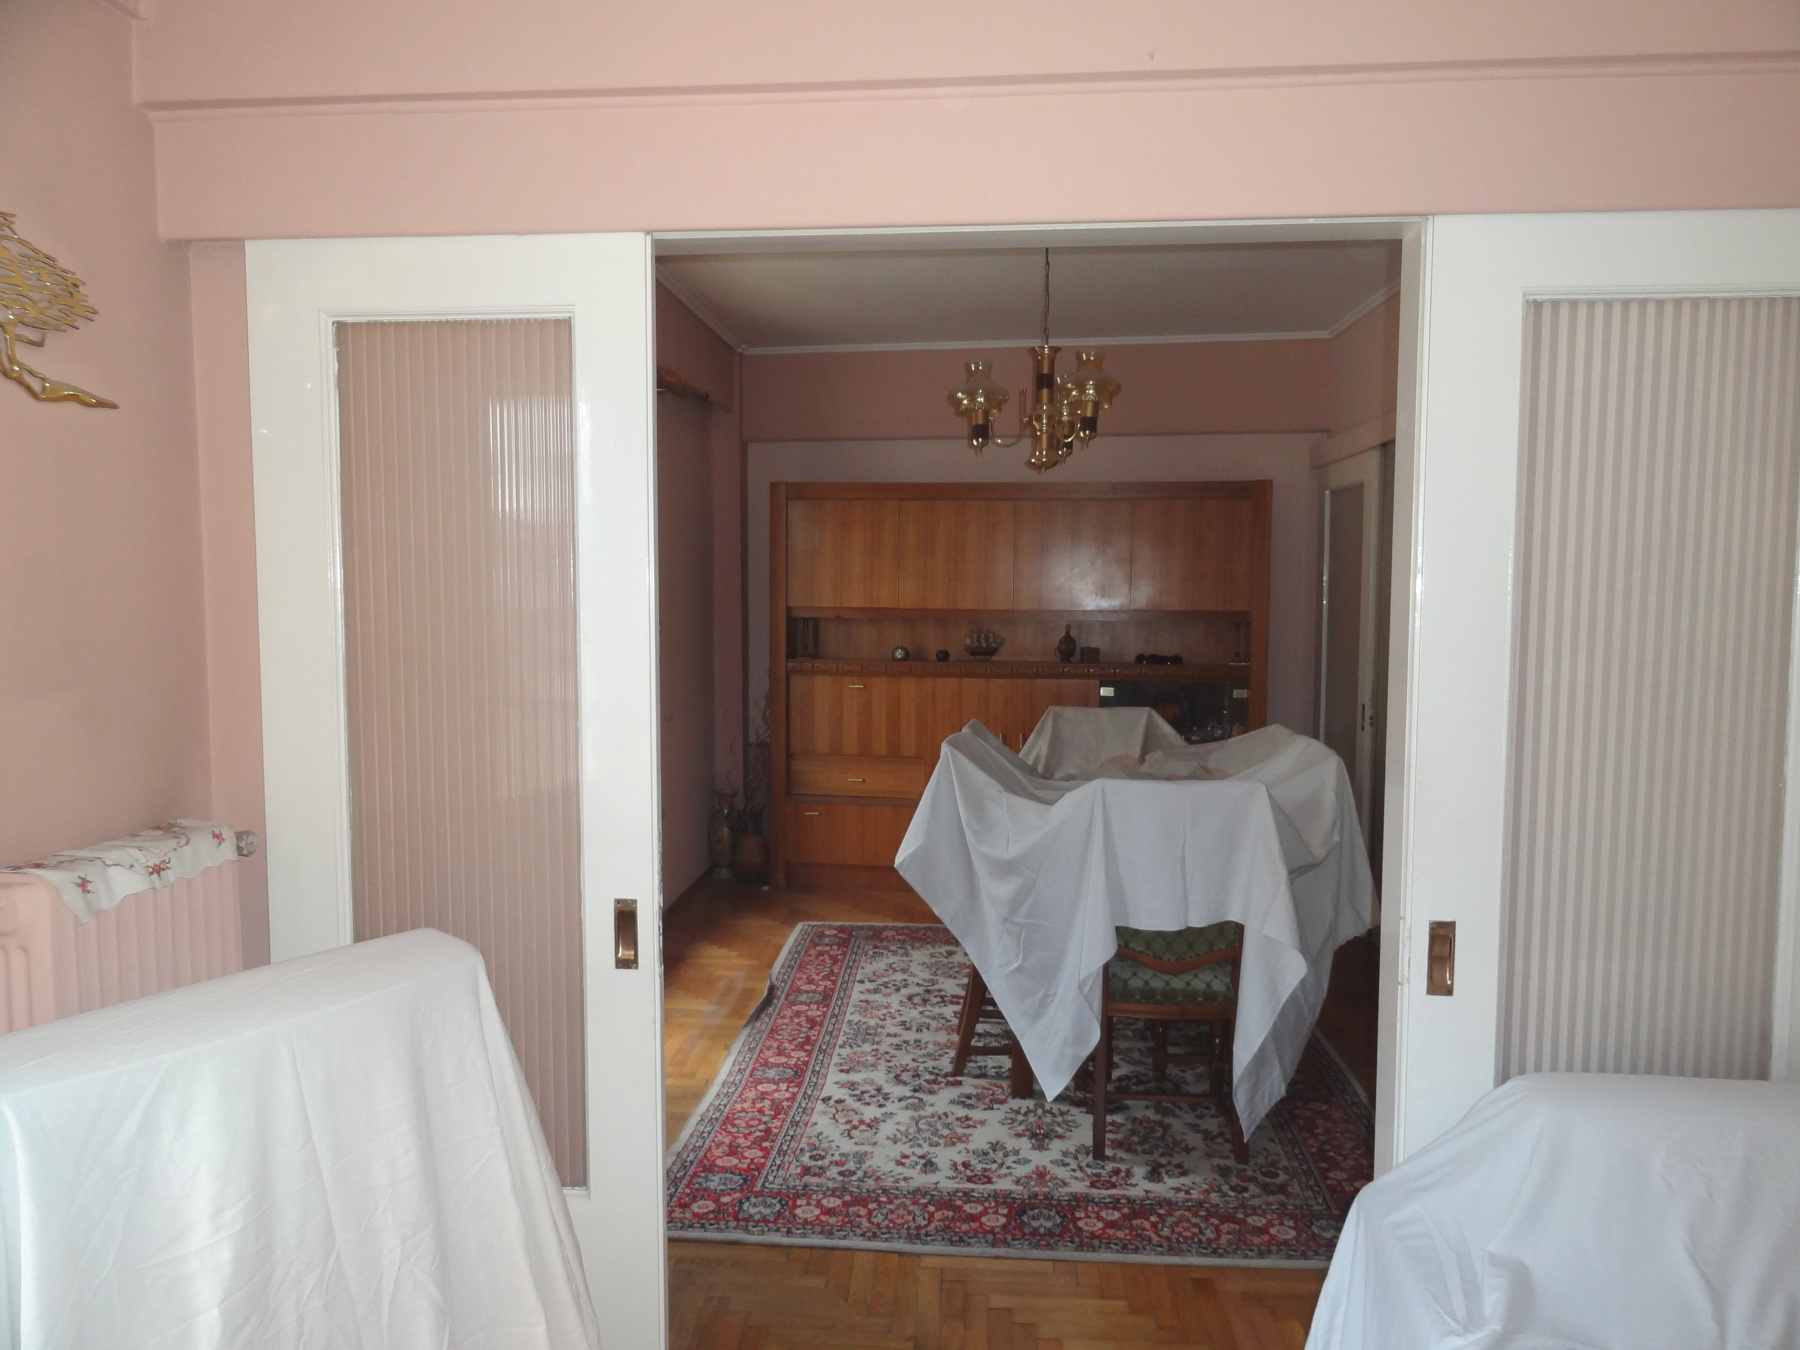 For sale 2 bedrooms apartment of 83 sq.m. 3rd floor in the center of Ioannina near Ch. Trikoupi